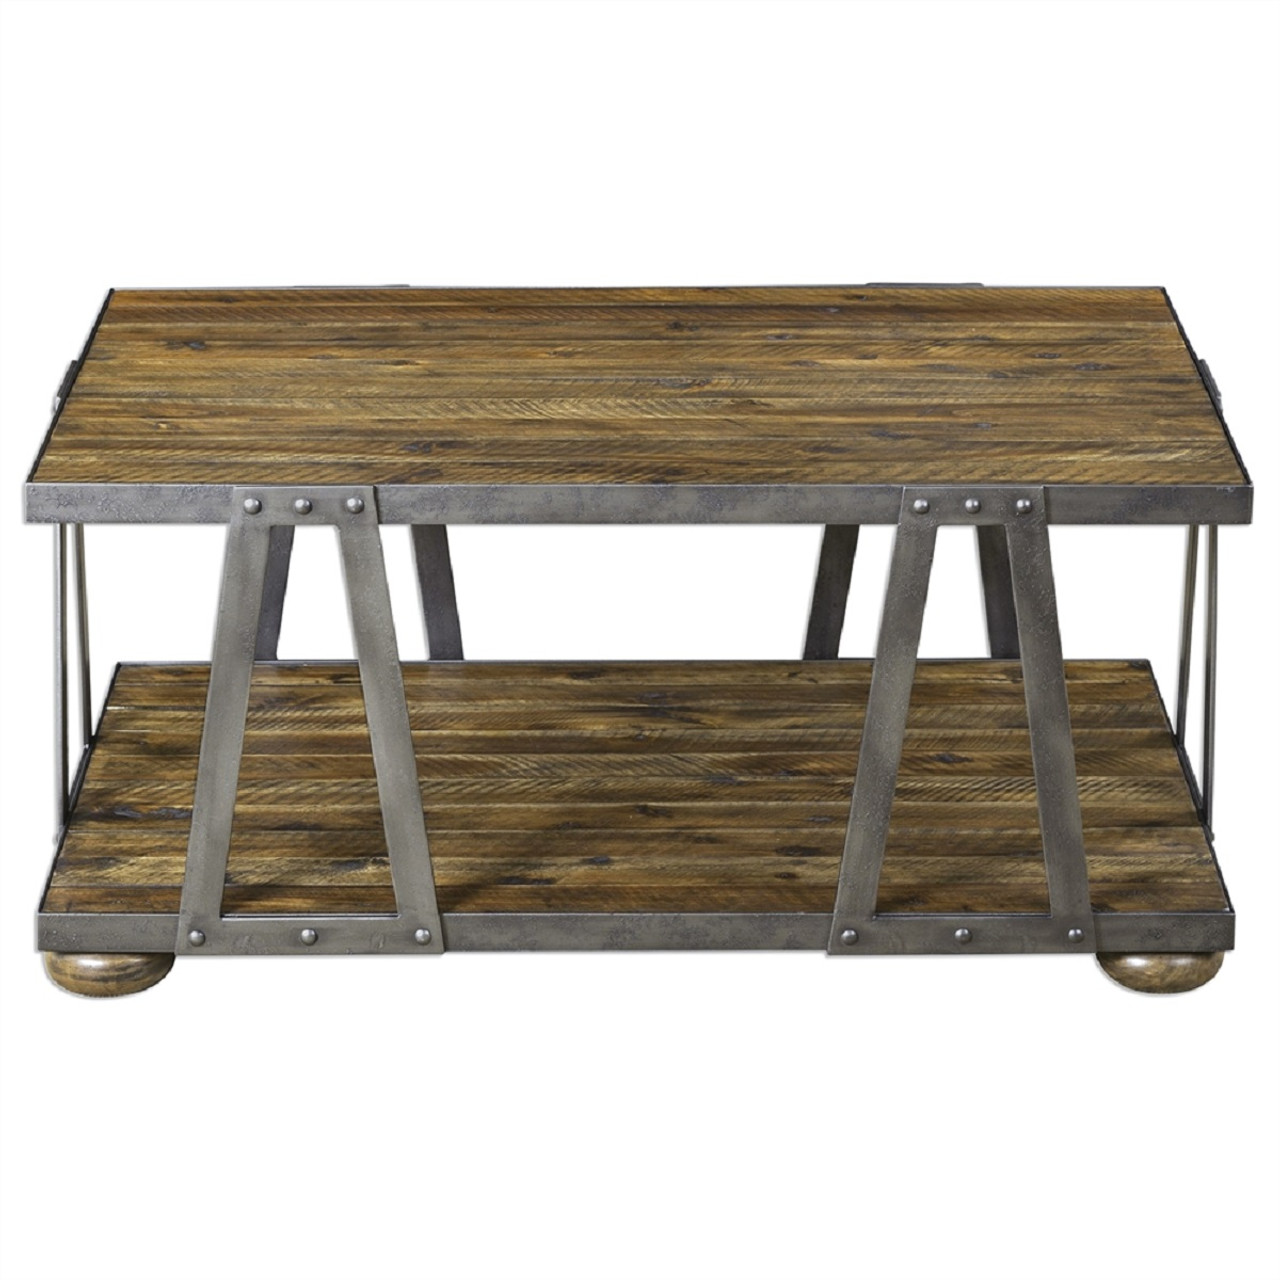 Vladimir Solid Acacia With Metal Strapping Studded Details - Studded coffee table